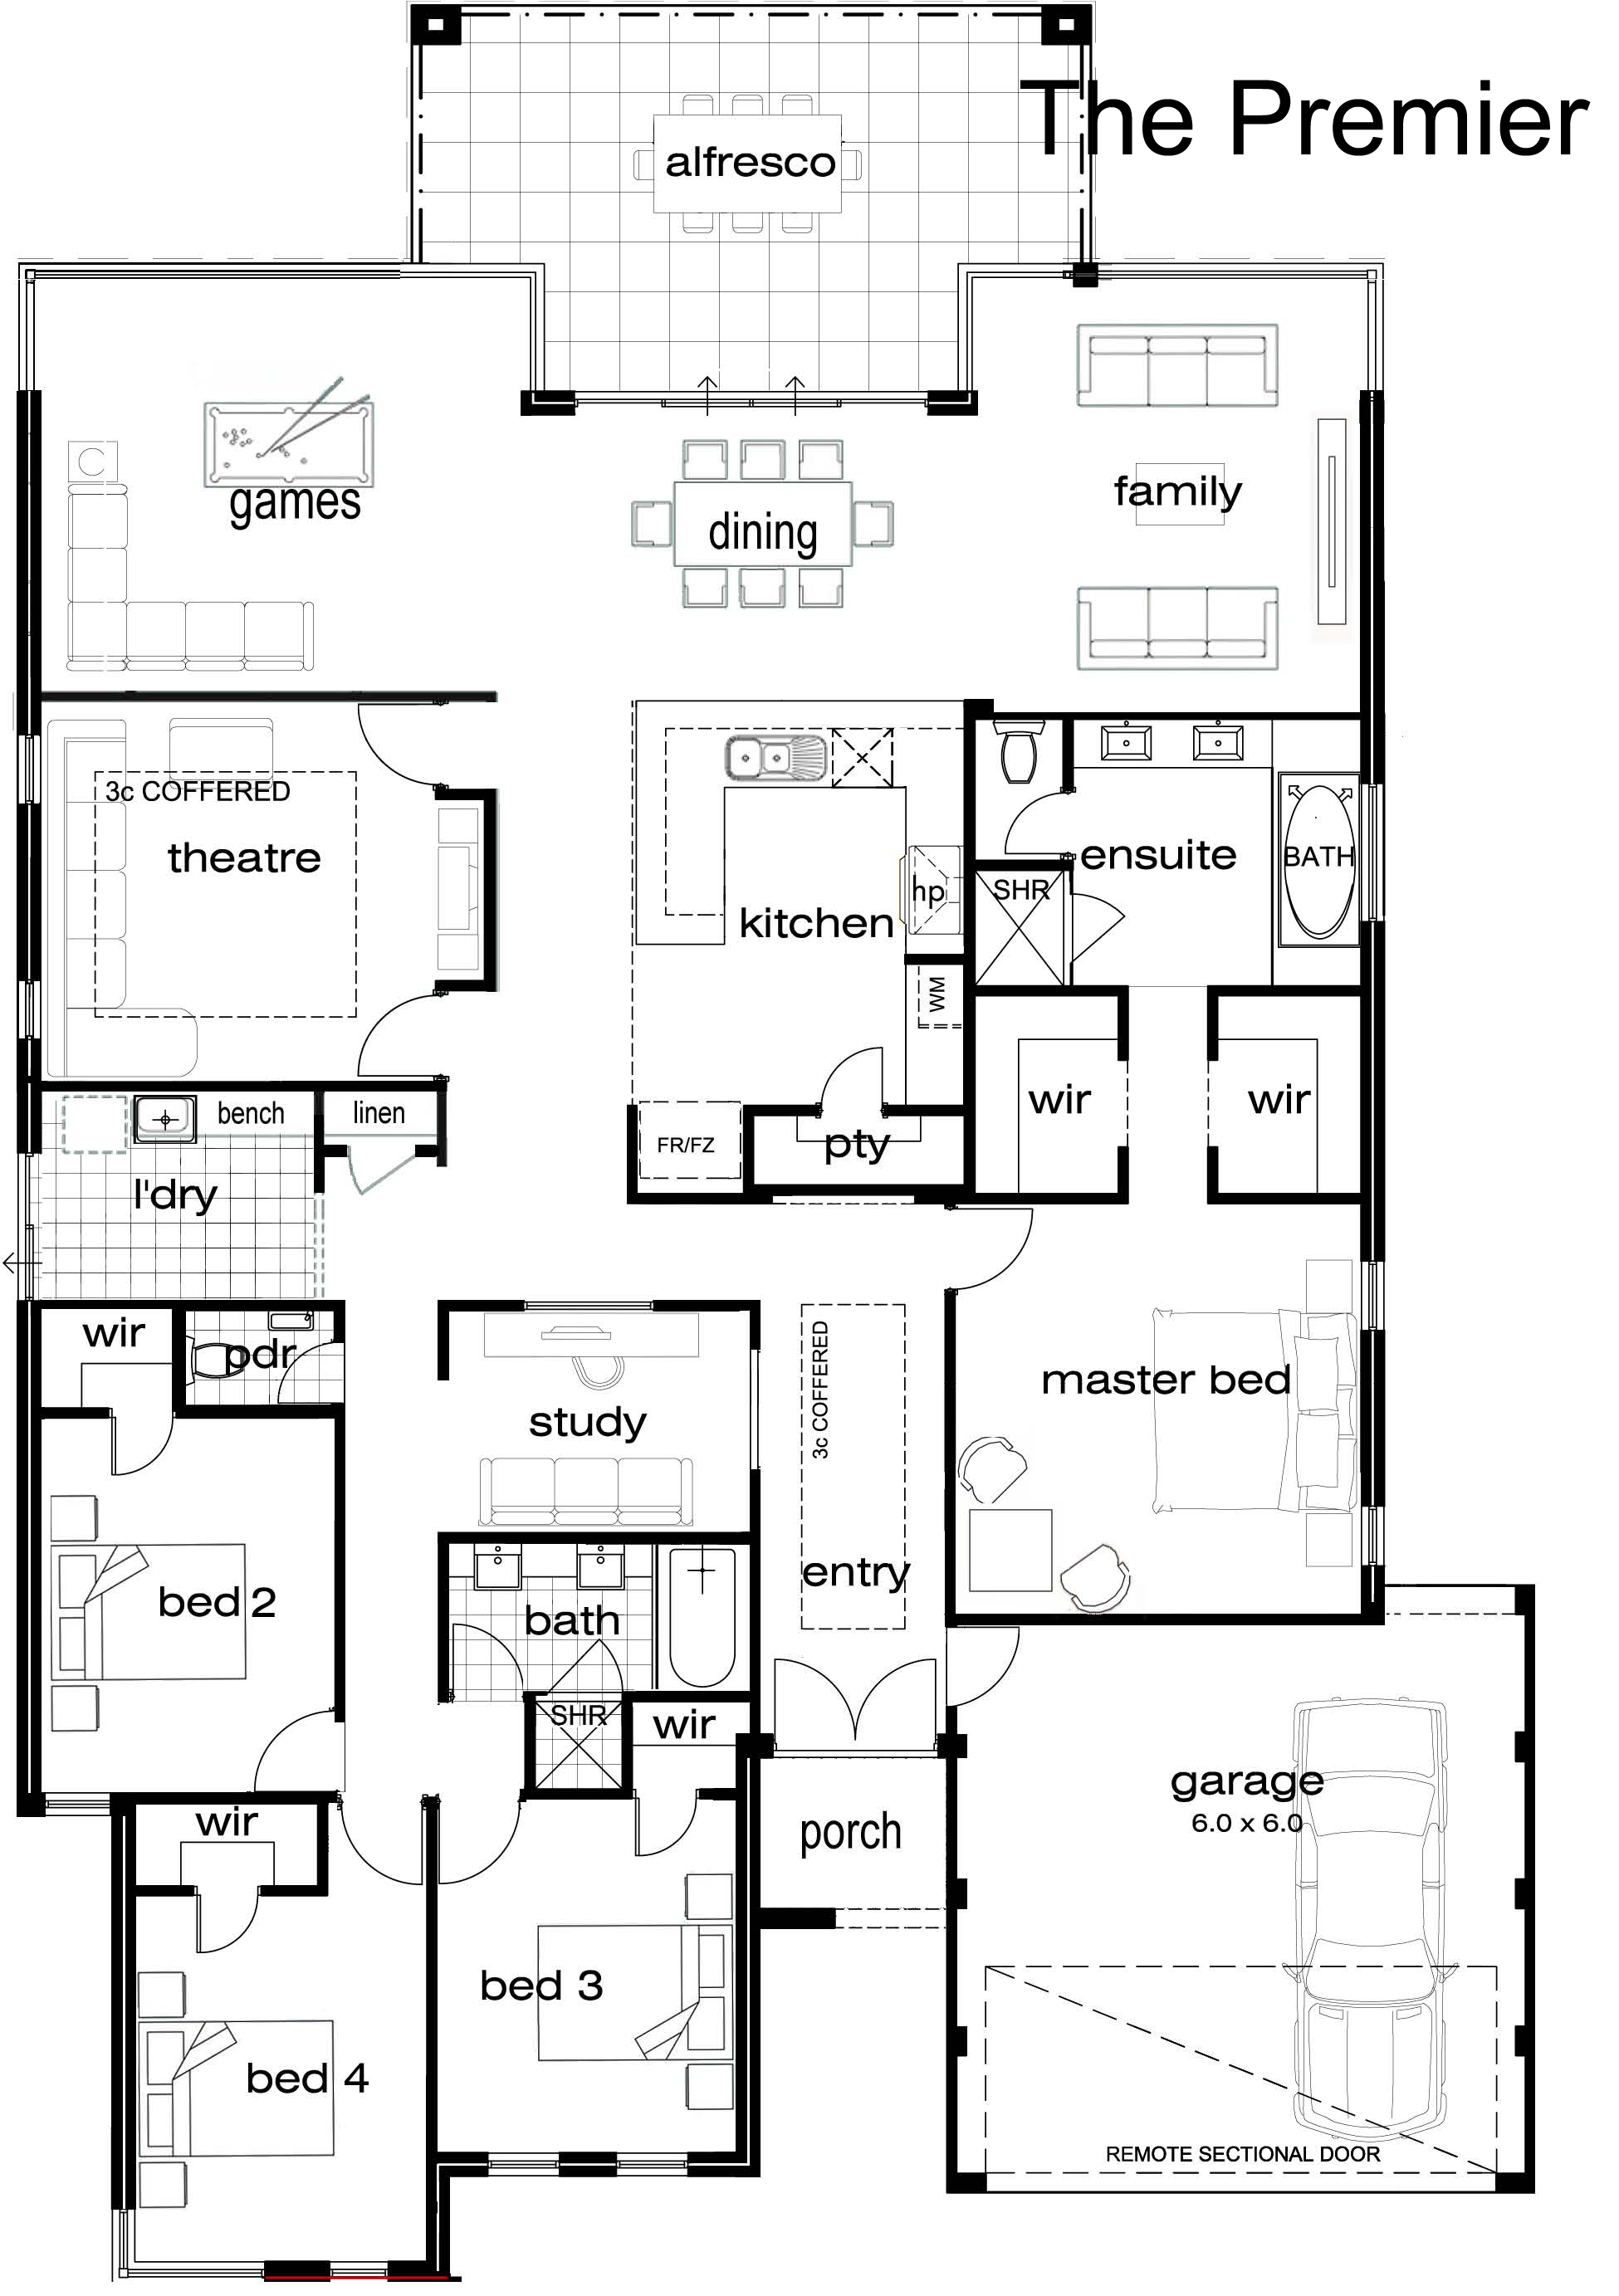 single storey house plan - Google Search | Single story ...